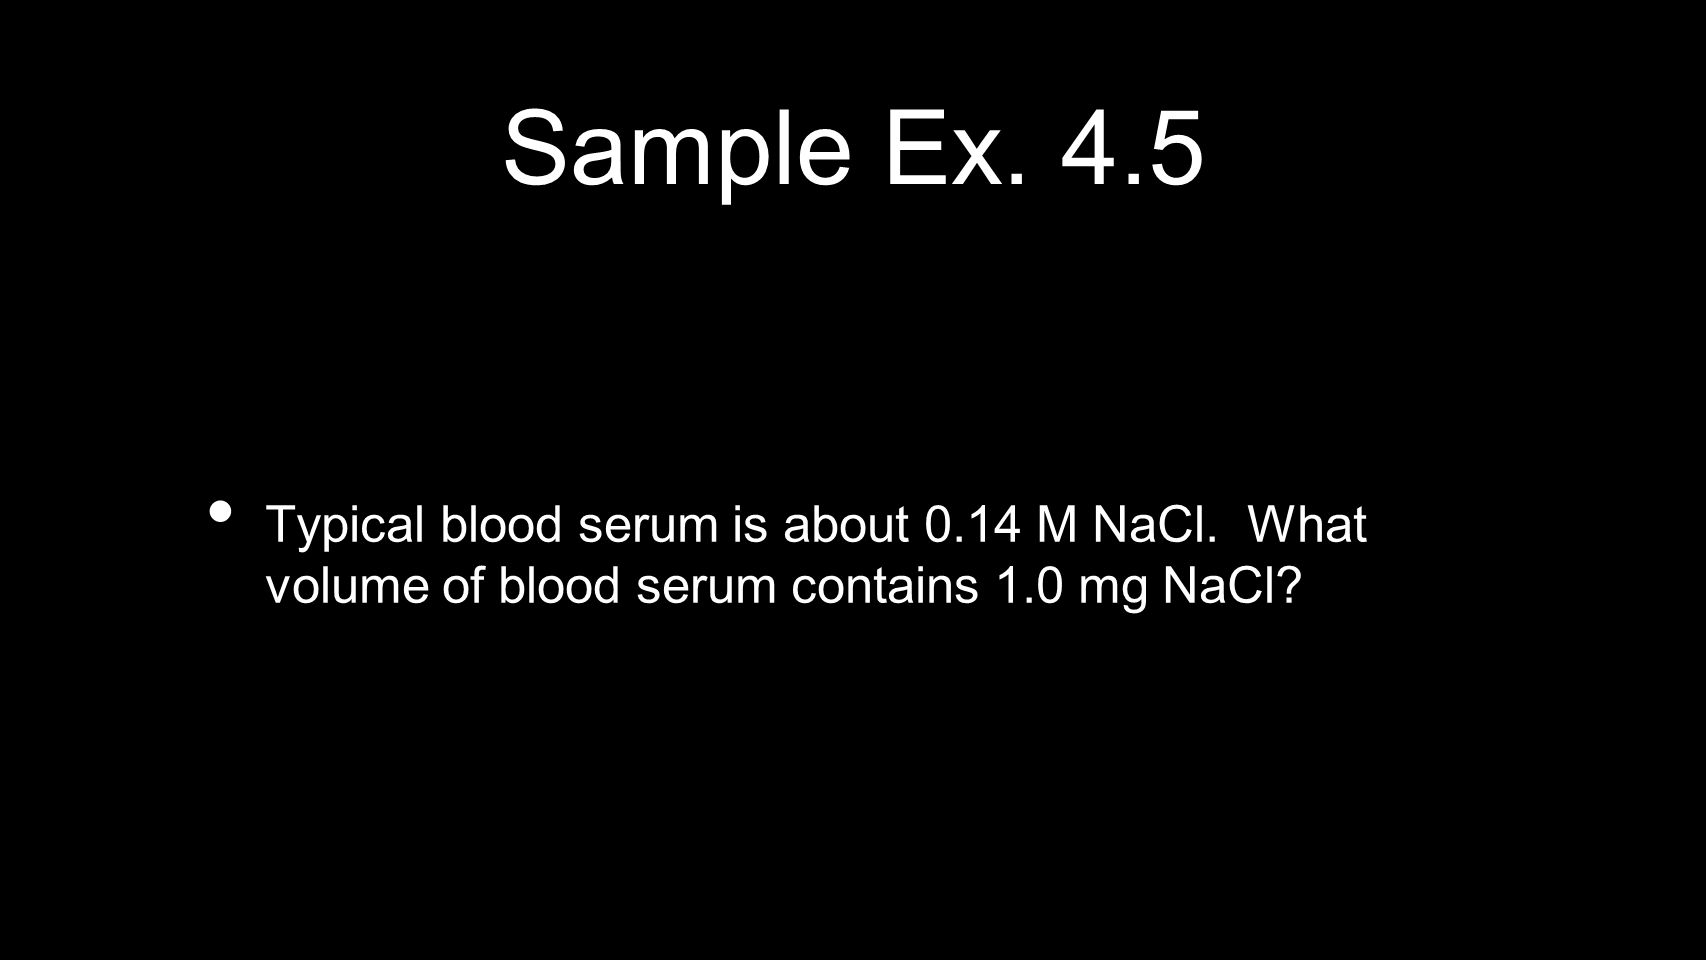 Sample Ex. 4.5 Typical blood serum is about 0.14 M NaCl. What volume of blood serum contains 1.0 mg NaCl?